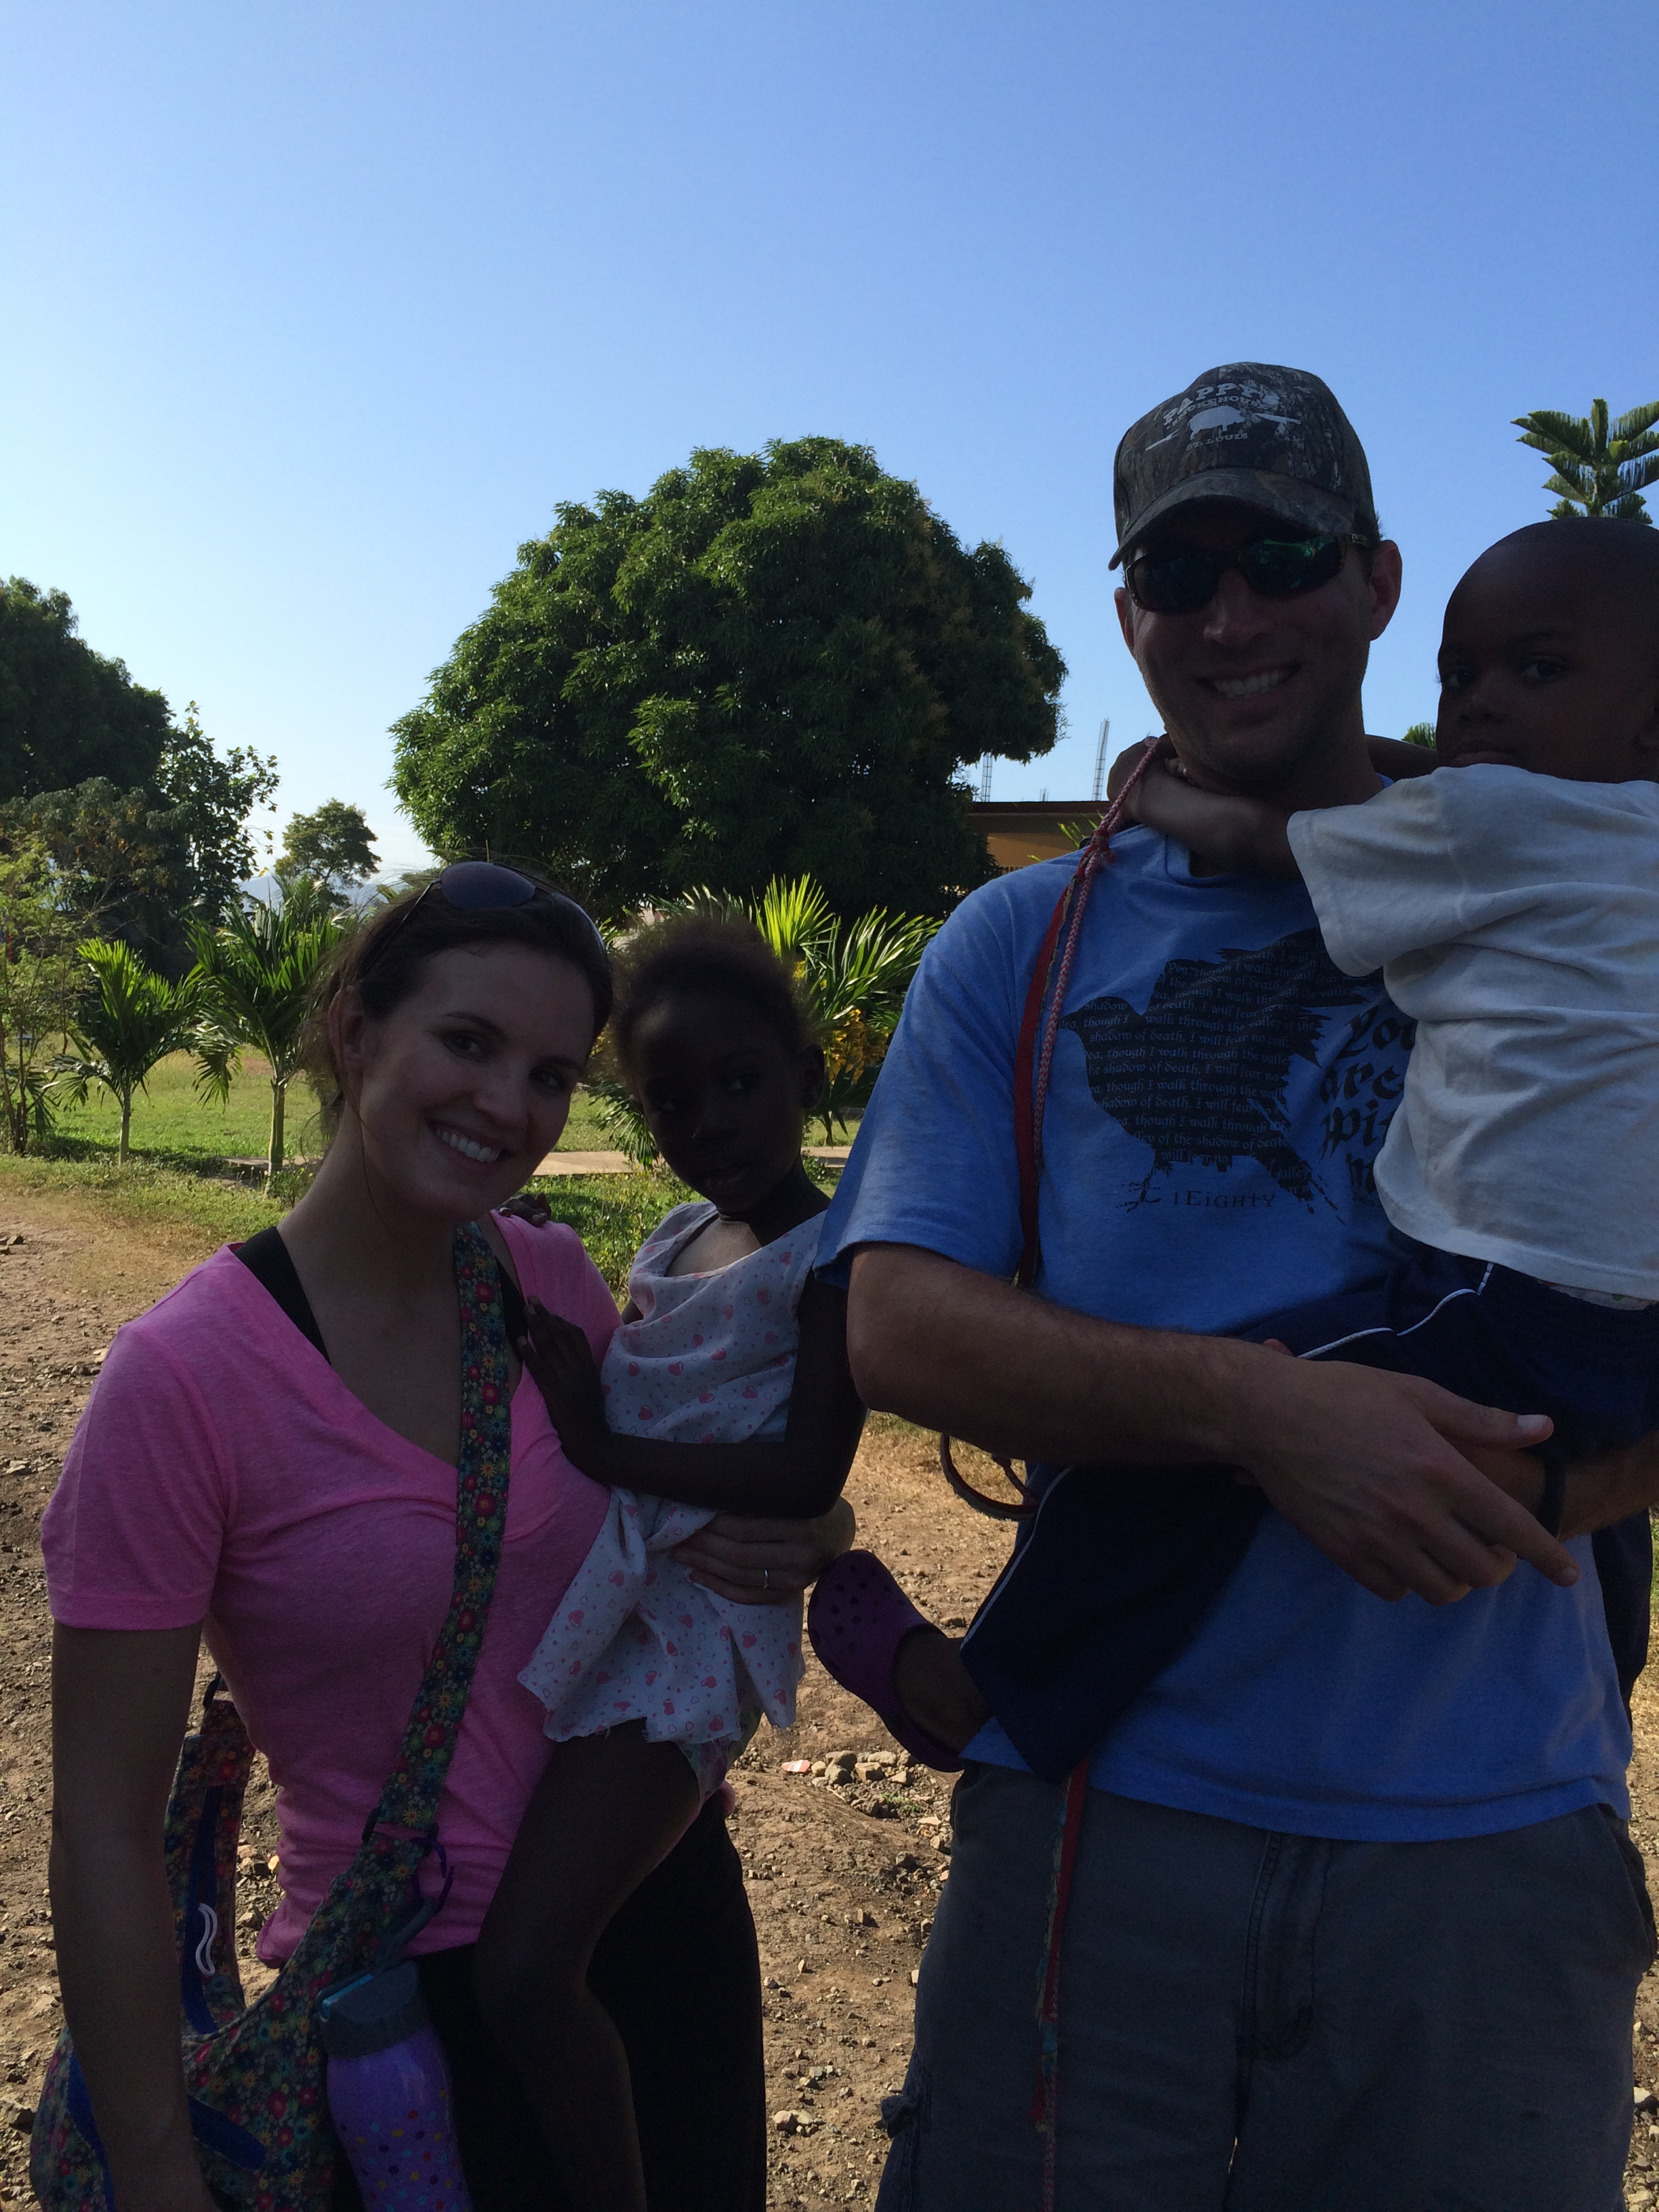 The Wainwrights on a mission trip in Haiti